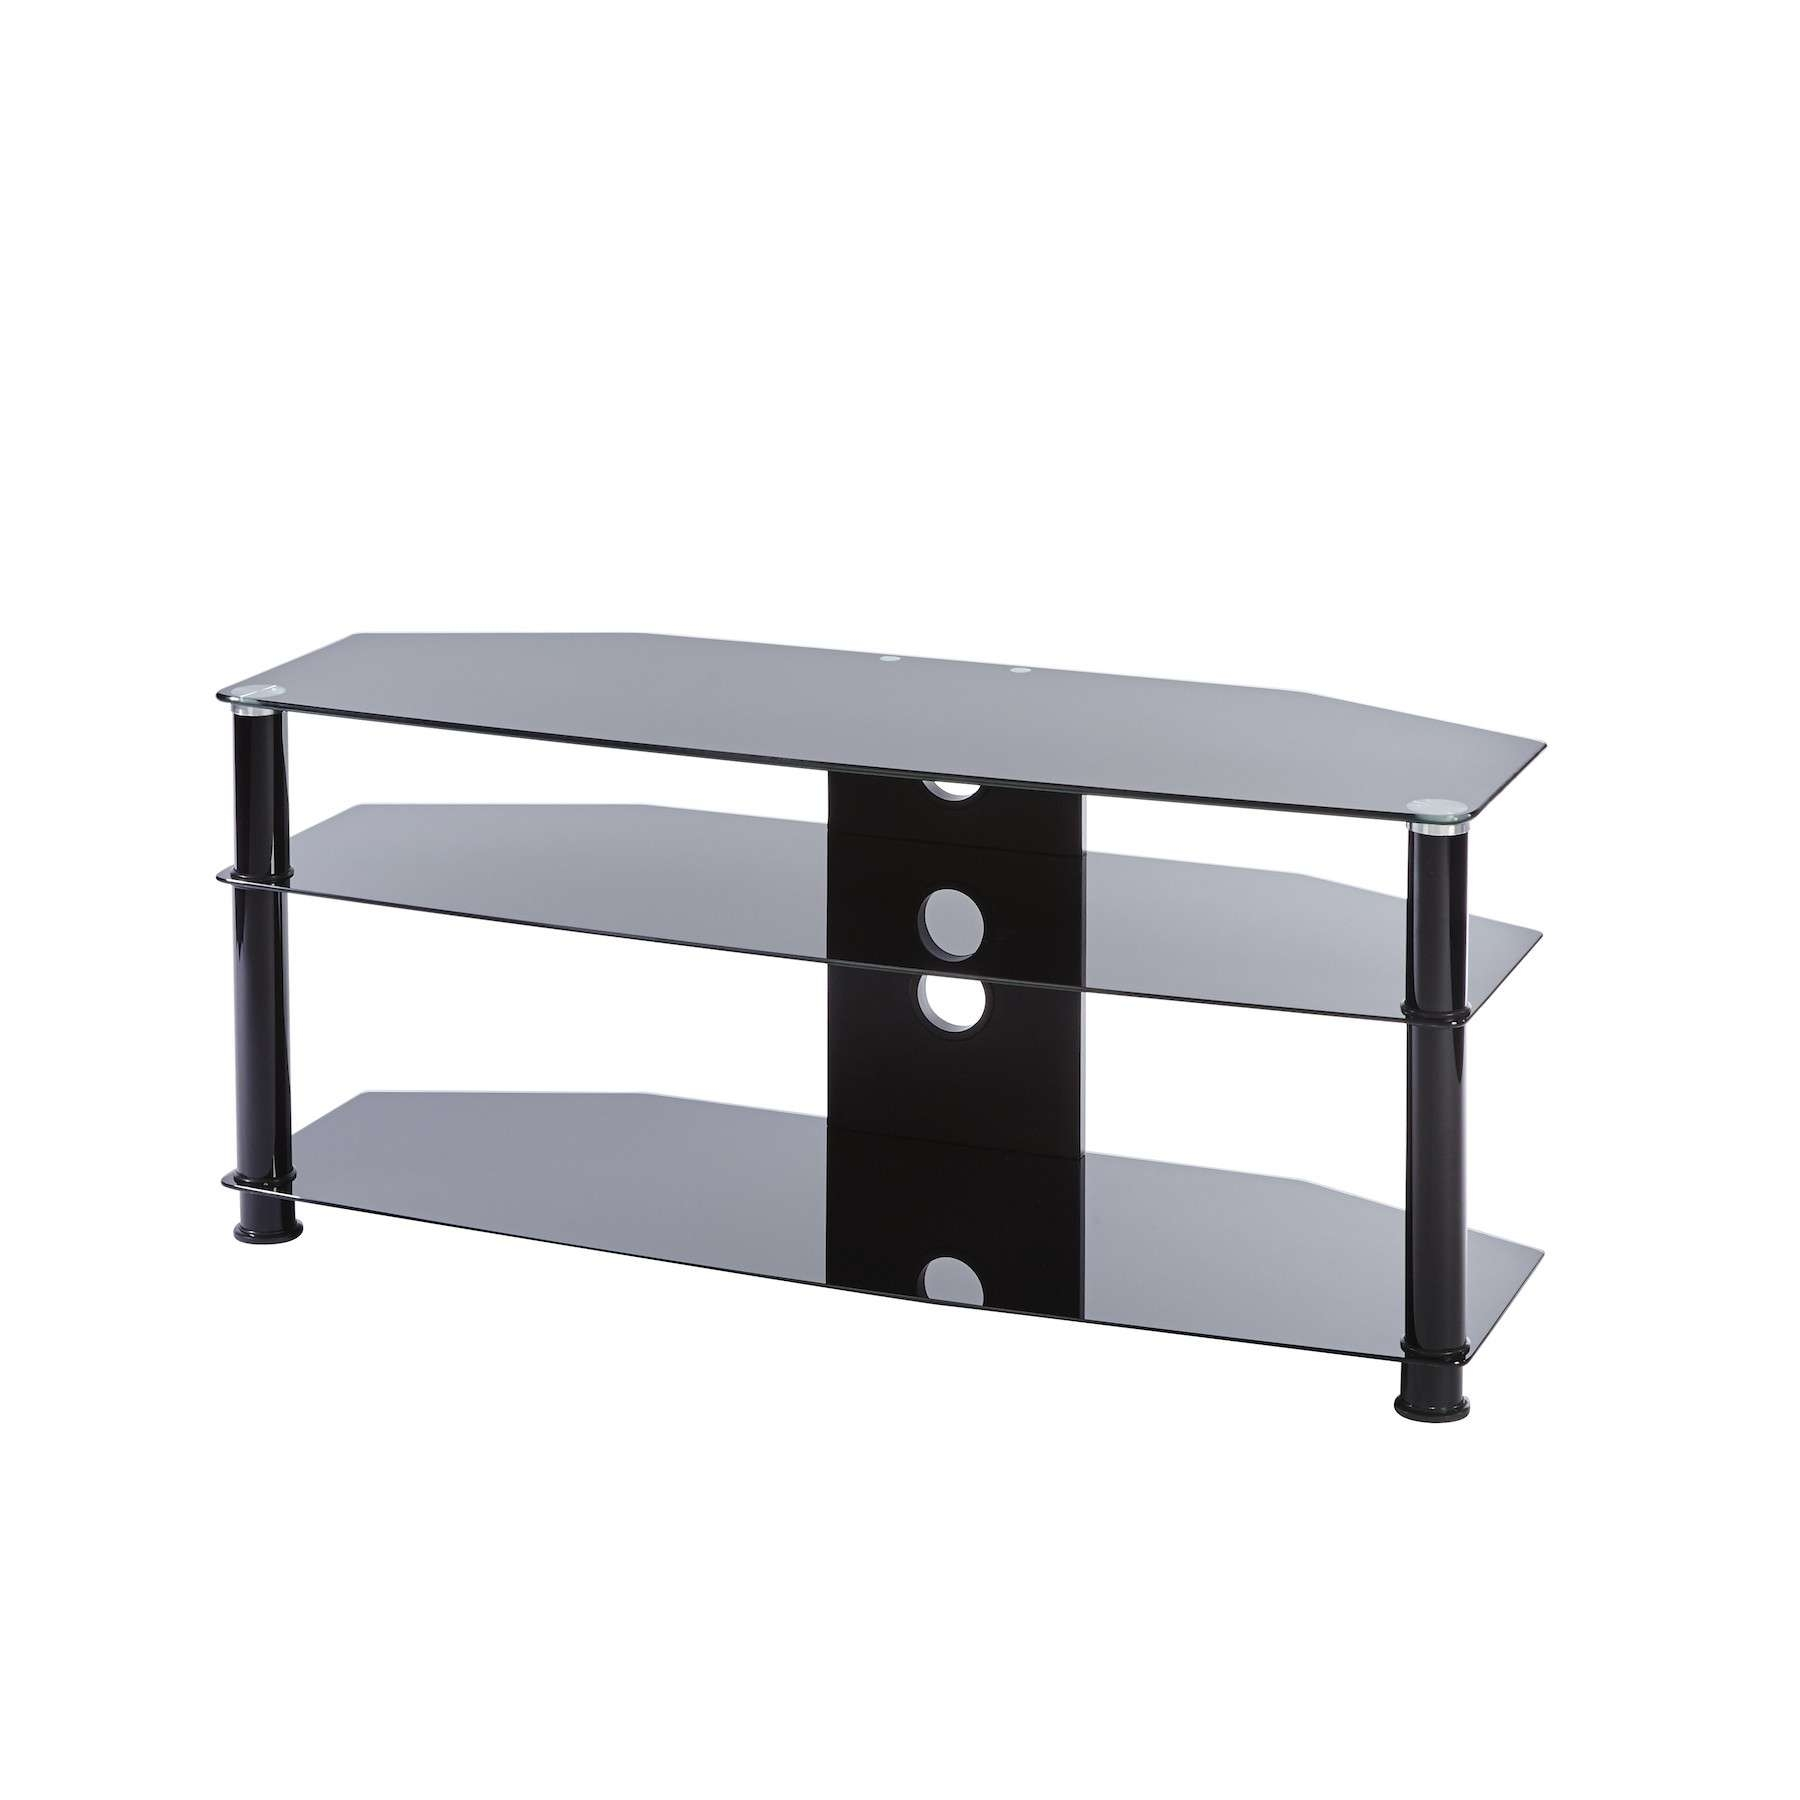 Black Glass 3 Shelf Tv Corner Stand Up To 47 Inch Tv | Mmt Db1000 With Black Glass Tv Stands (View 6 of 15)